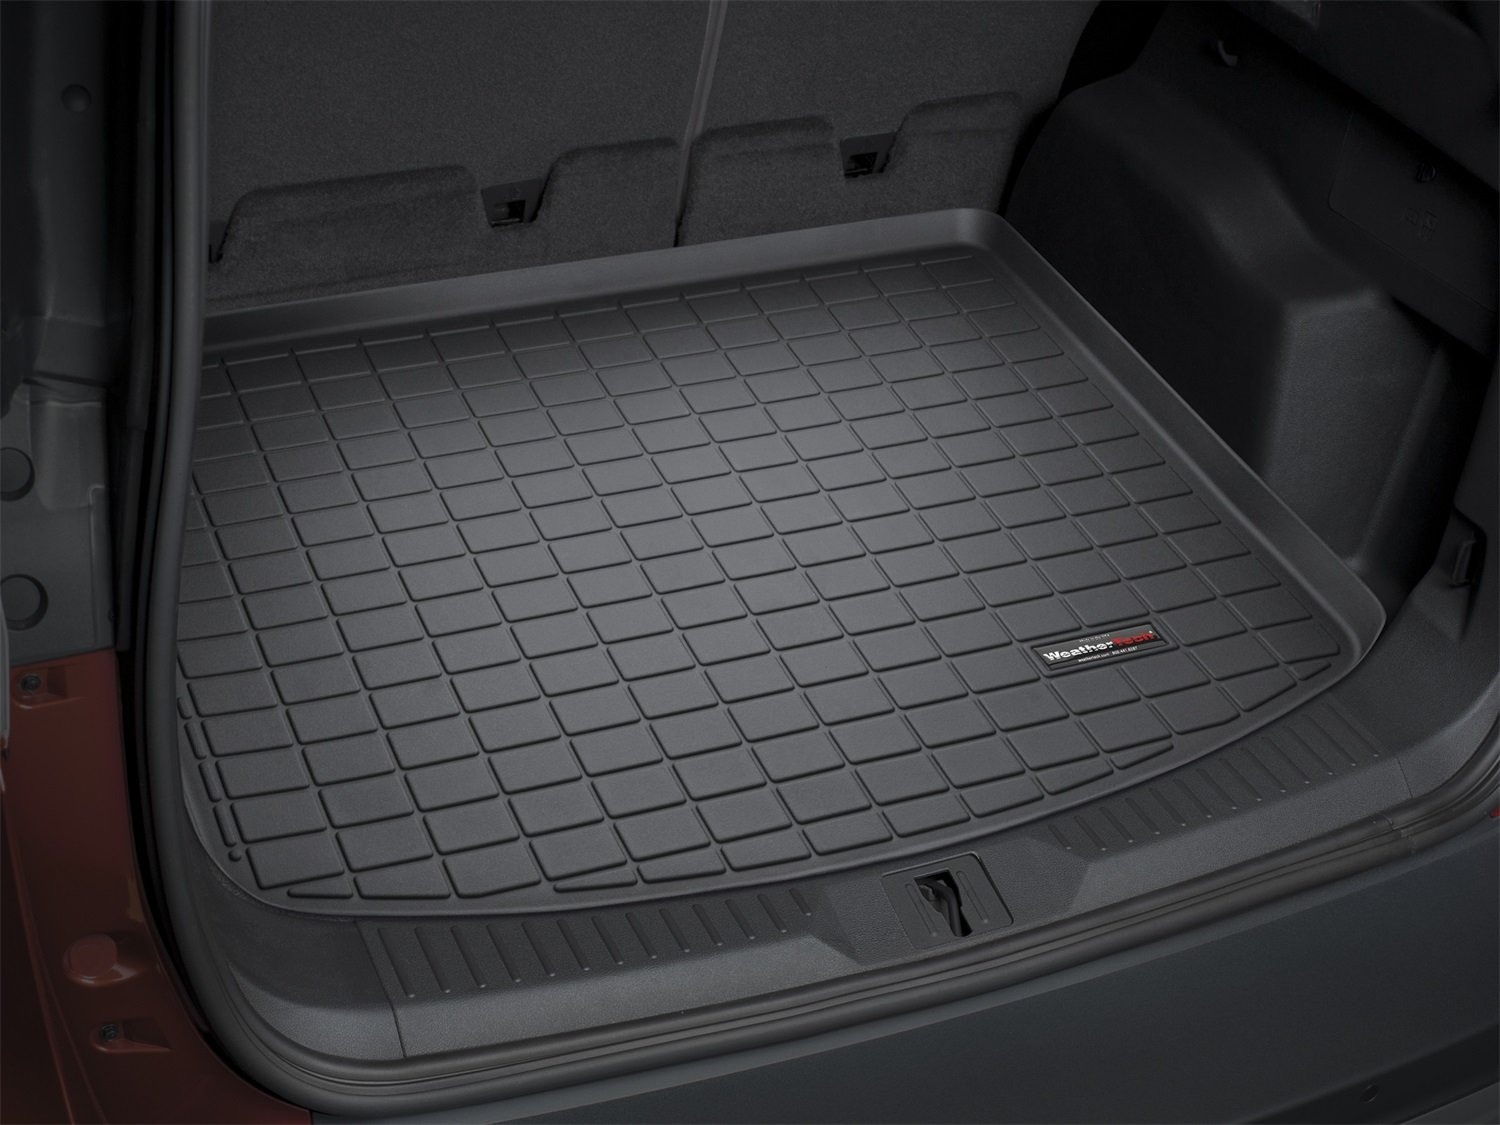 Weathertech floor mats alternative - Amazon Com Weathertech Custom Fit Cargo Liners For Ford Expedition Black Automotive